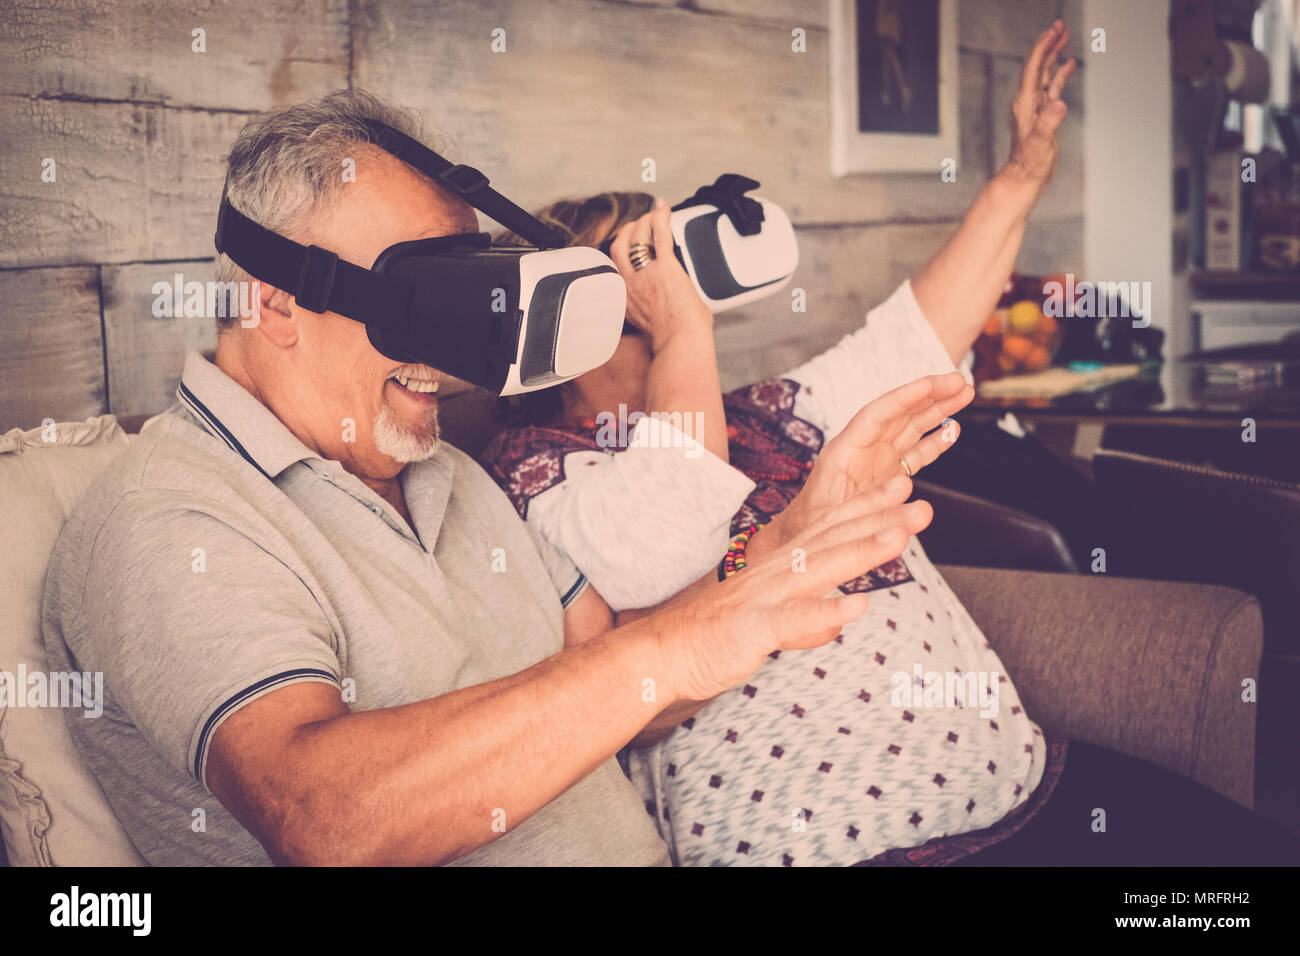 senior man and woman with goggles headset virtual reality eyeglasses playing and have fun sitting on the sofa at home. Warm filter and life together c - Stock Image